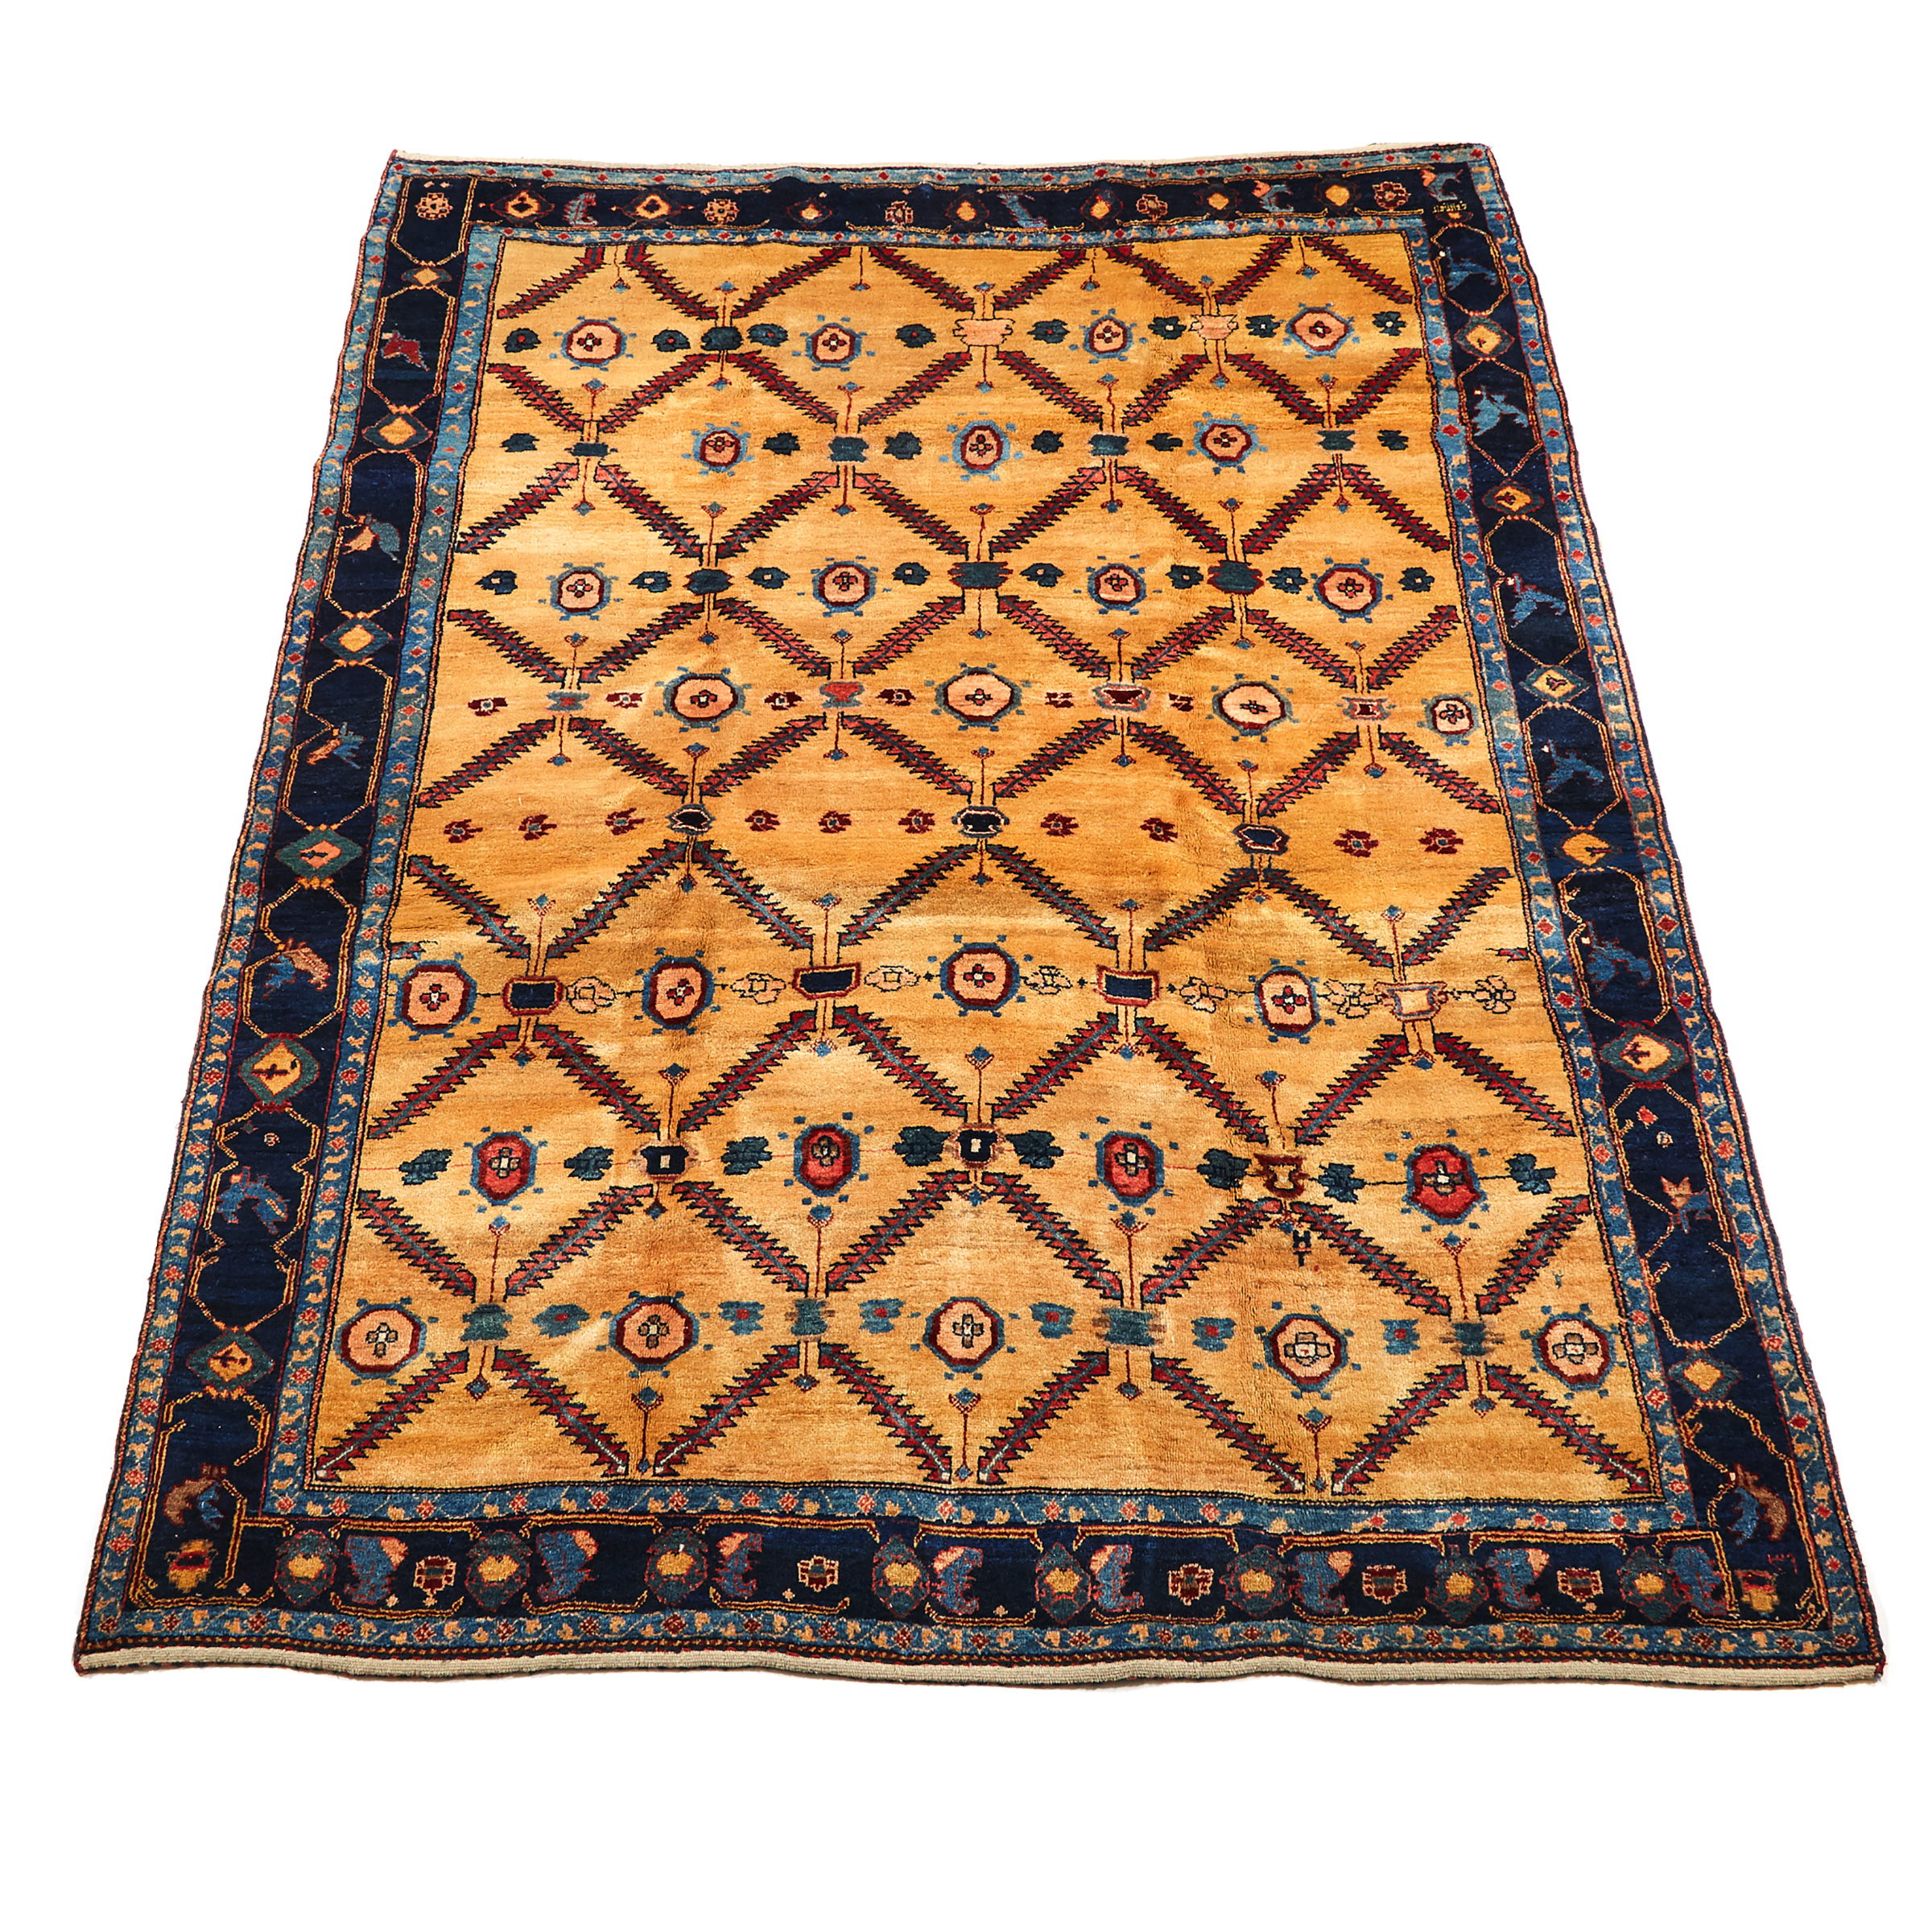 Gabbeh Carpet, Persian, mid 20th century